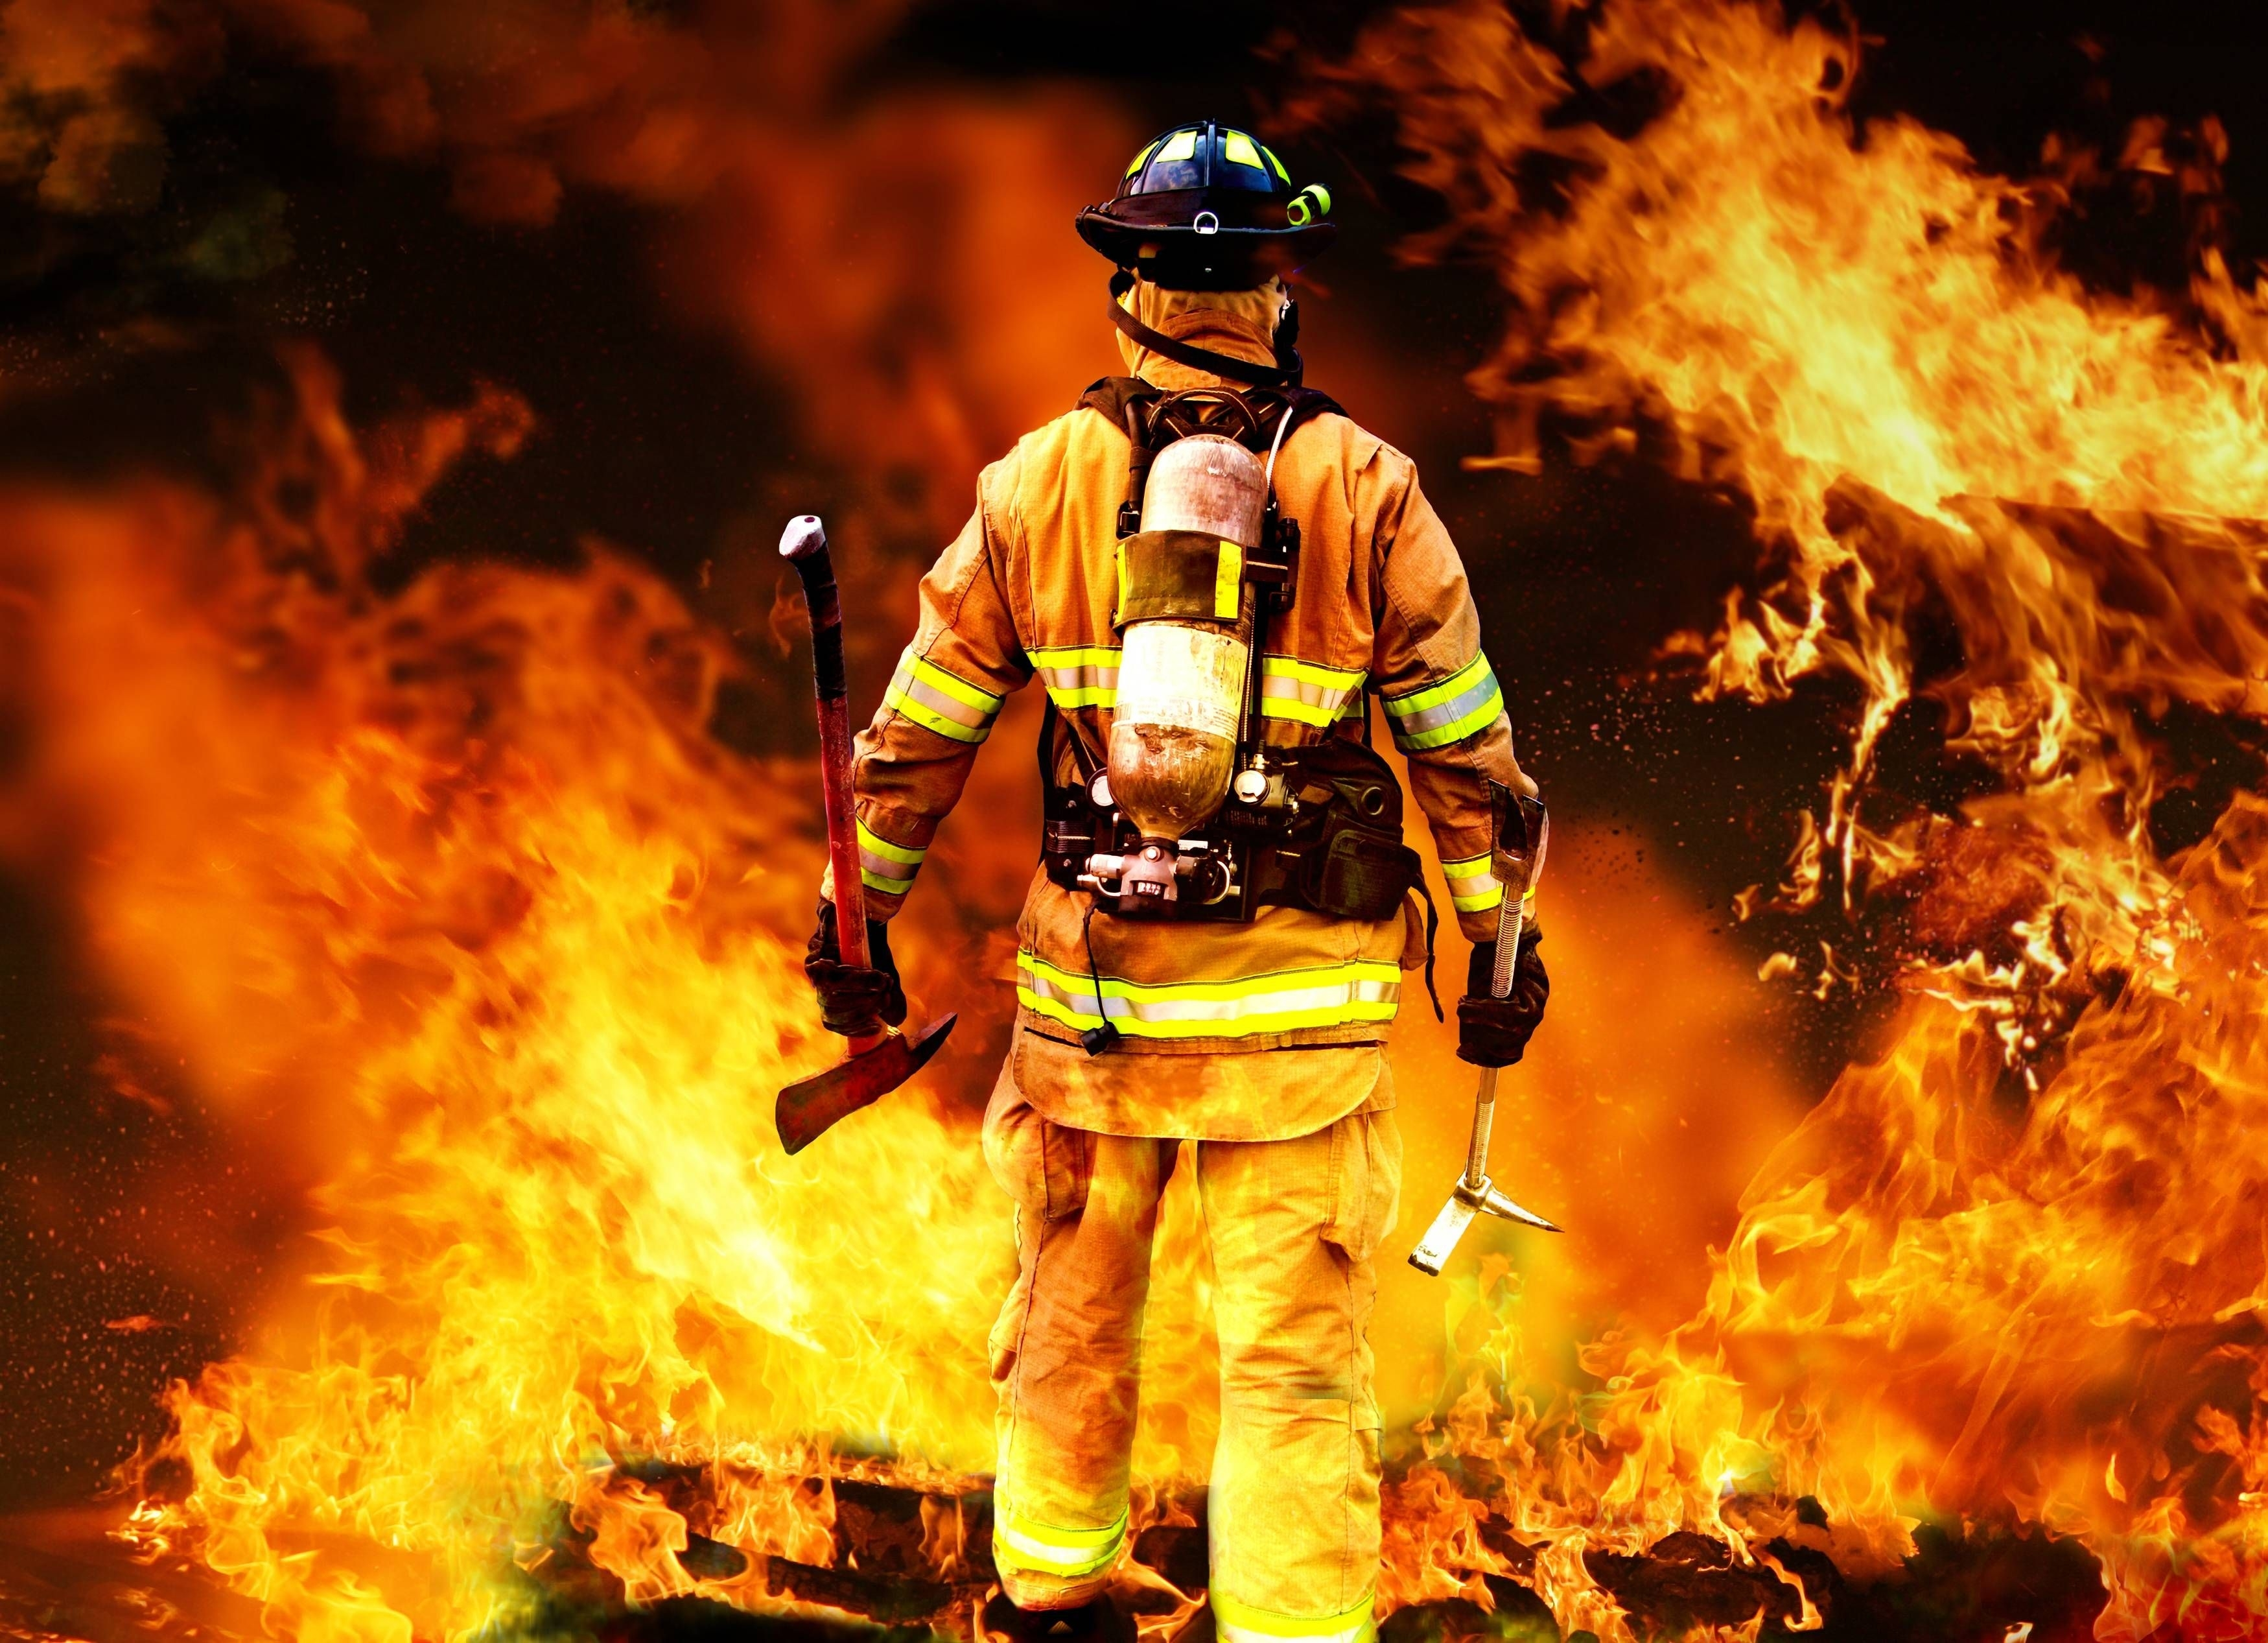 free firefighter wallpaper for phone - wallpapersafari | images